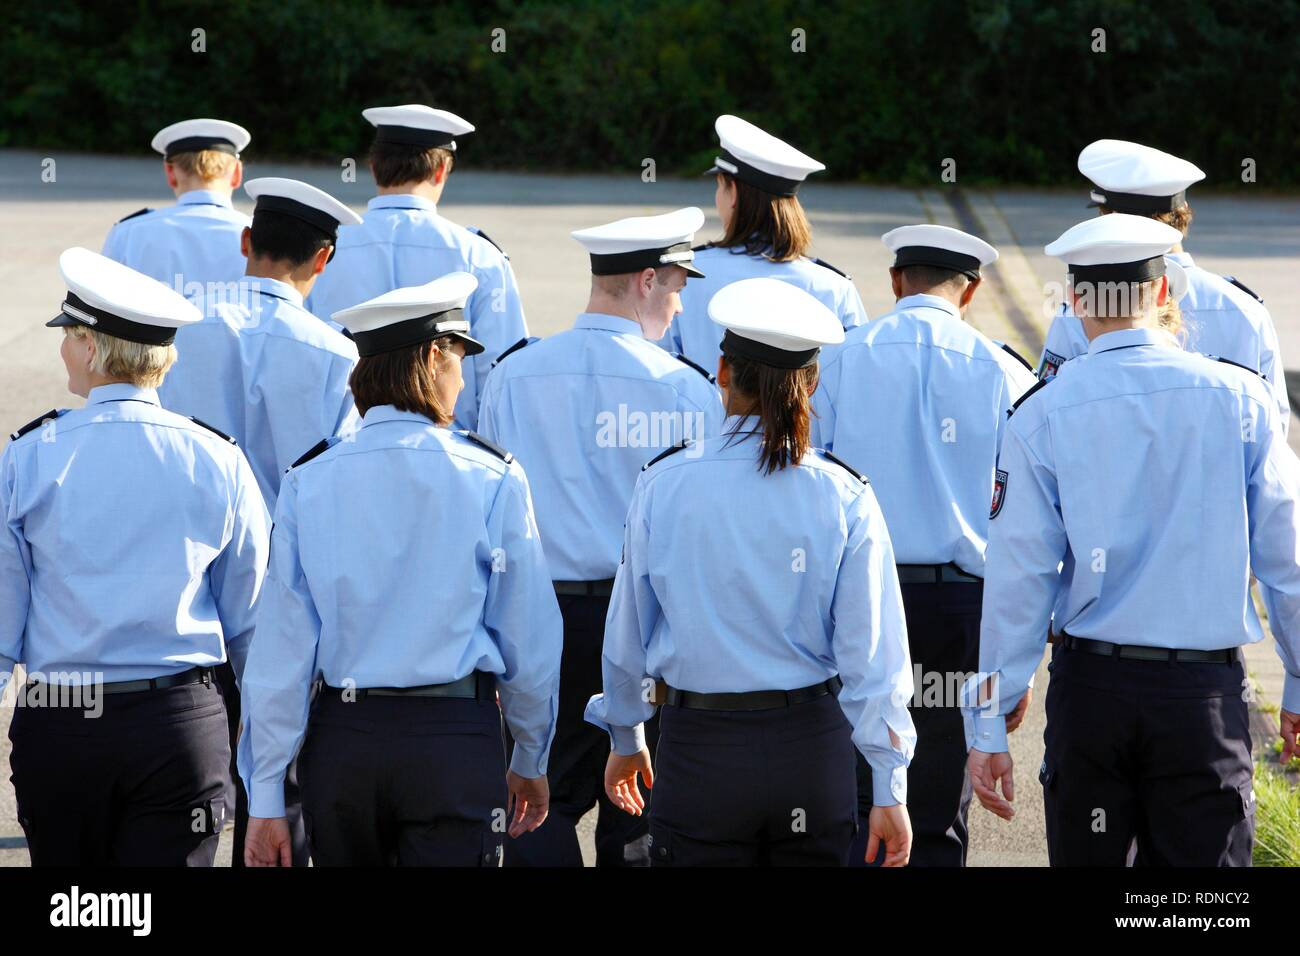 Police trainees, Commissioner candidates, on the way to a training hour in the first year of training - Stock Image